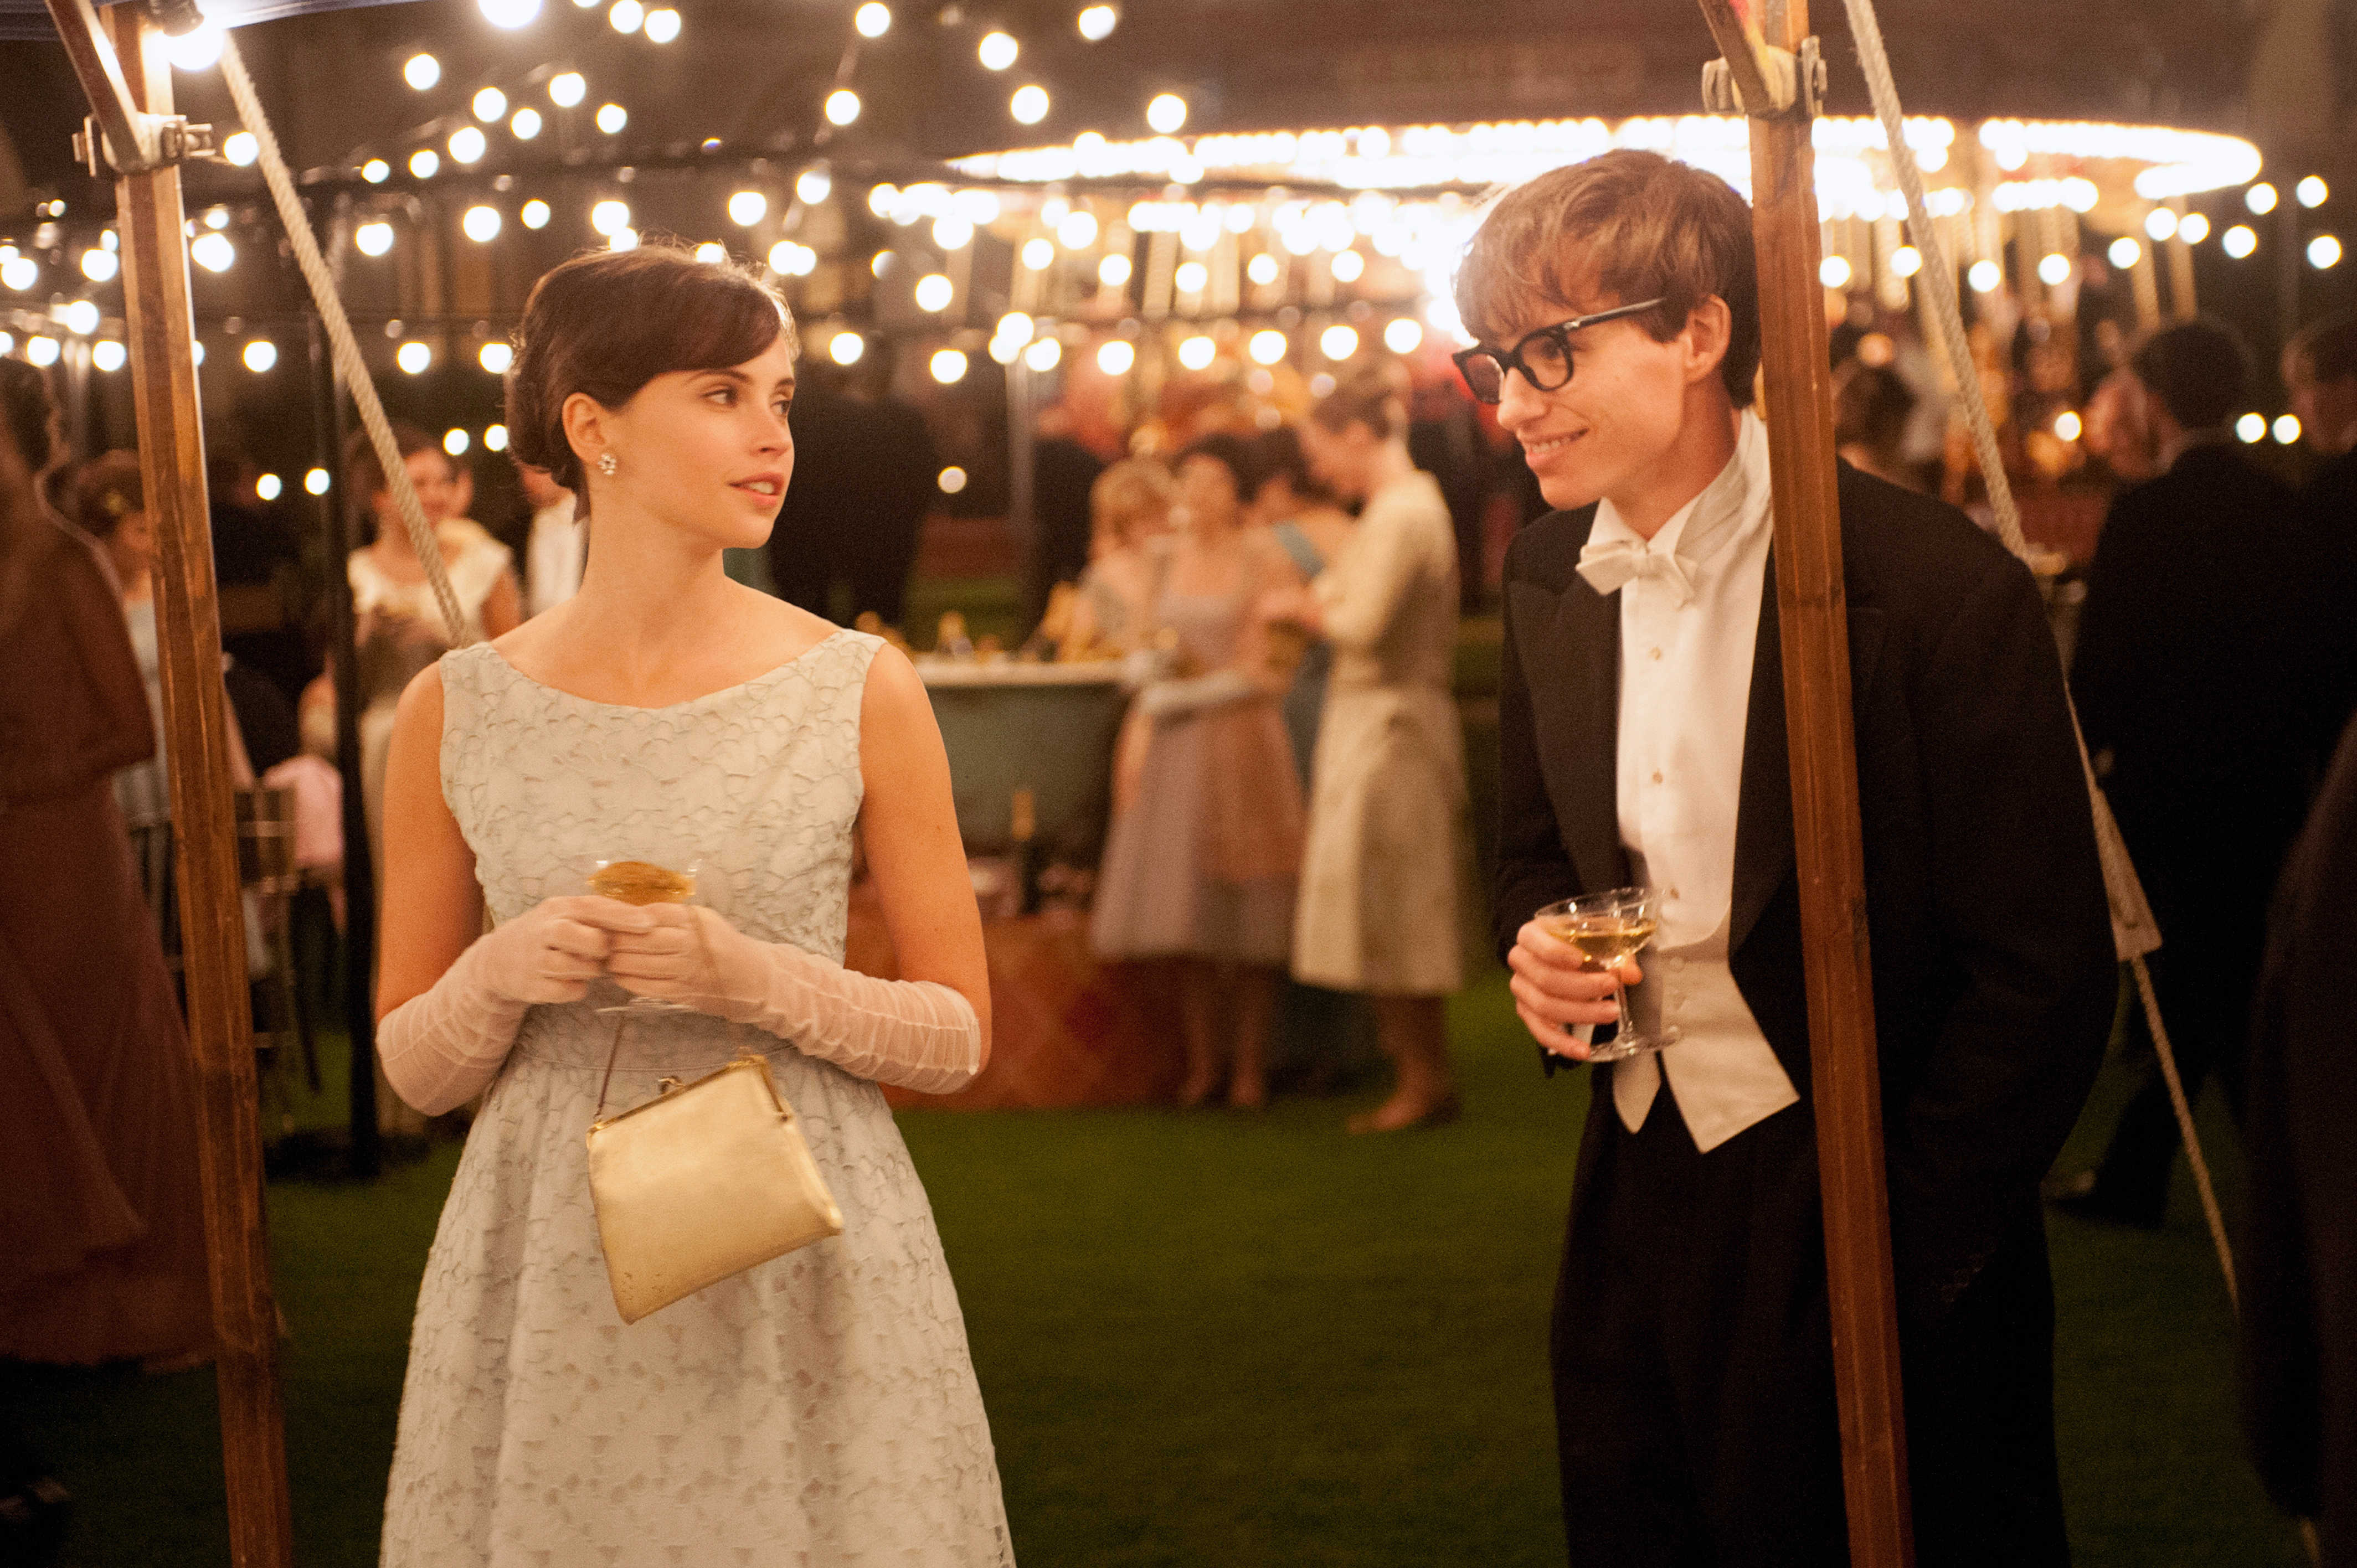 """The Theory of Everything"" charts the personal, romantic and ultimately heartbreaking life of the famed physicist. Photo used with permission from Focus Features."